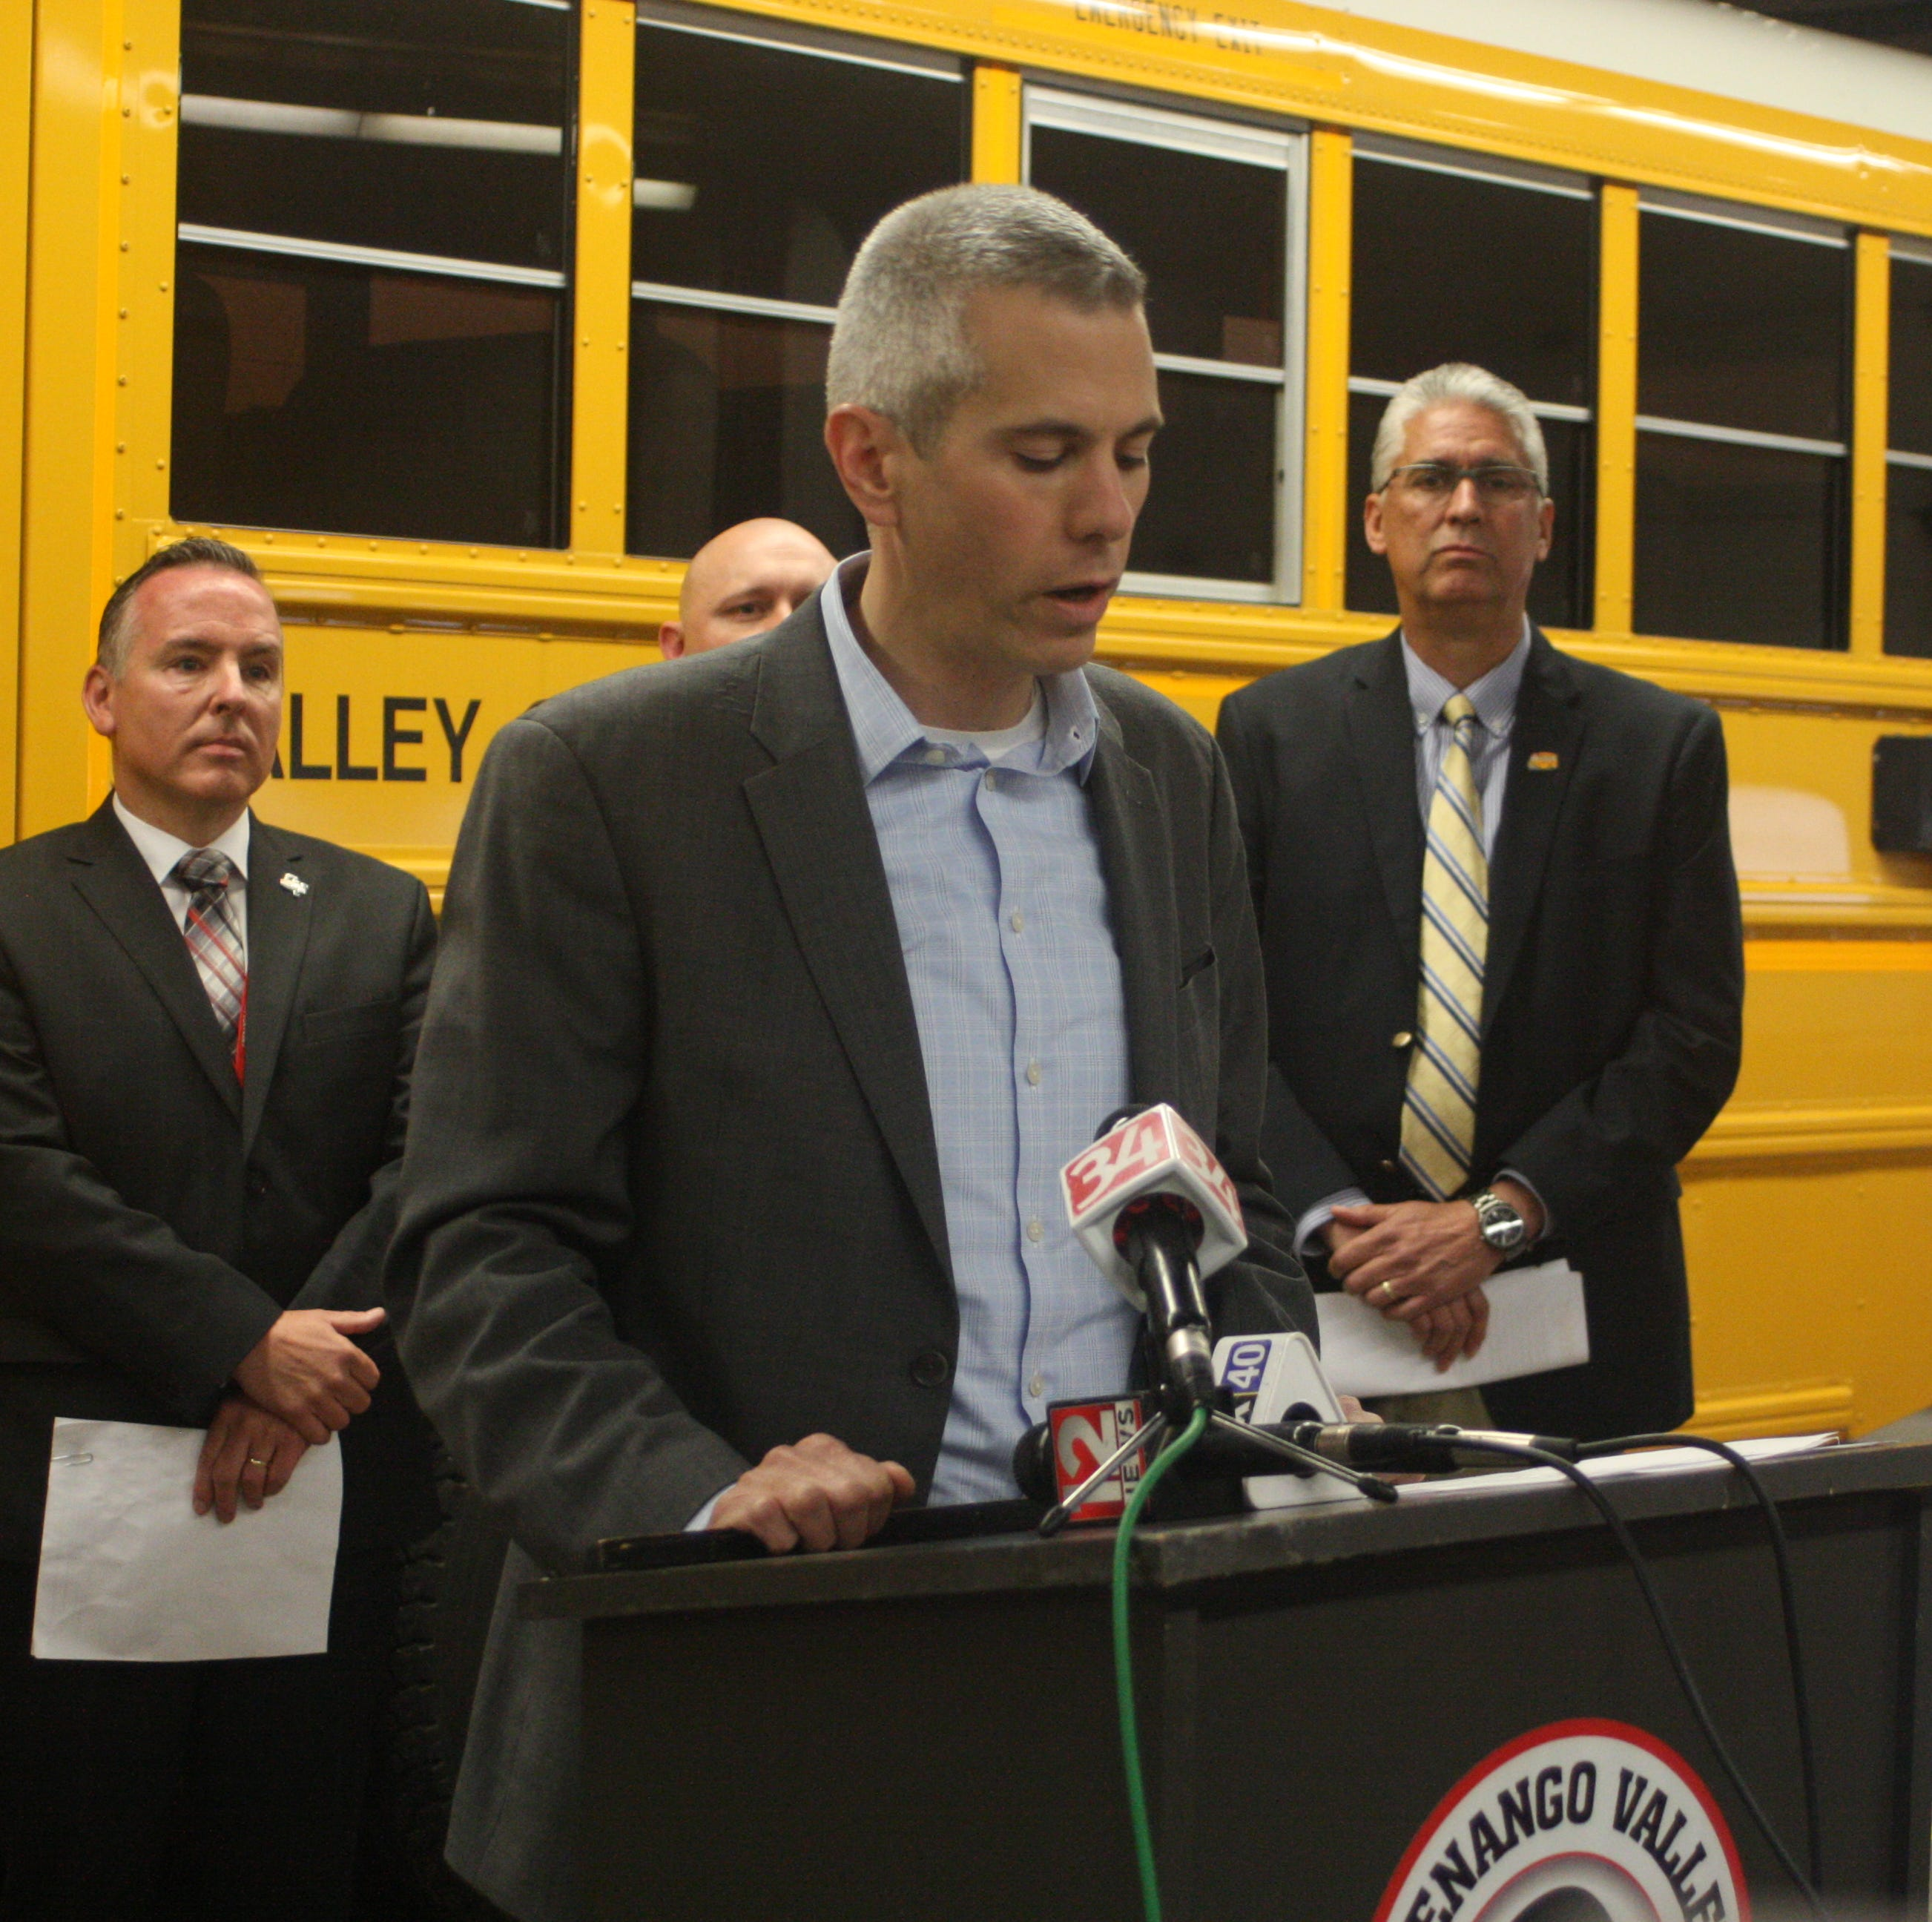 Norwich bus video: Brindisi co-sponsors bill to stop illegal passing of school buses